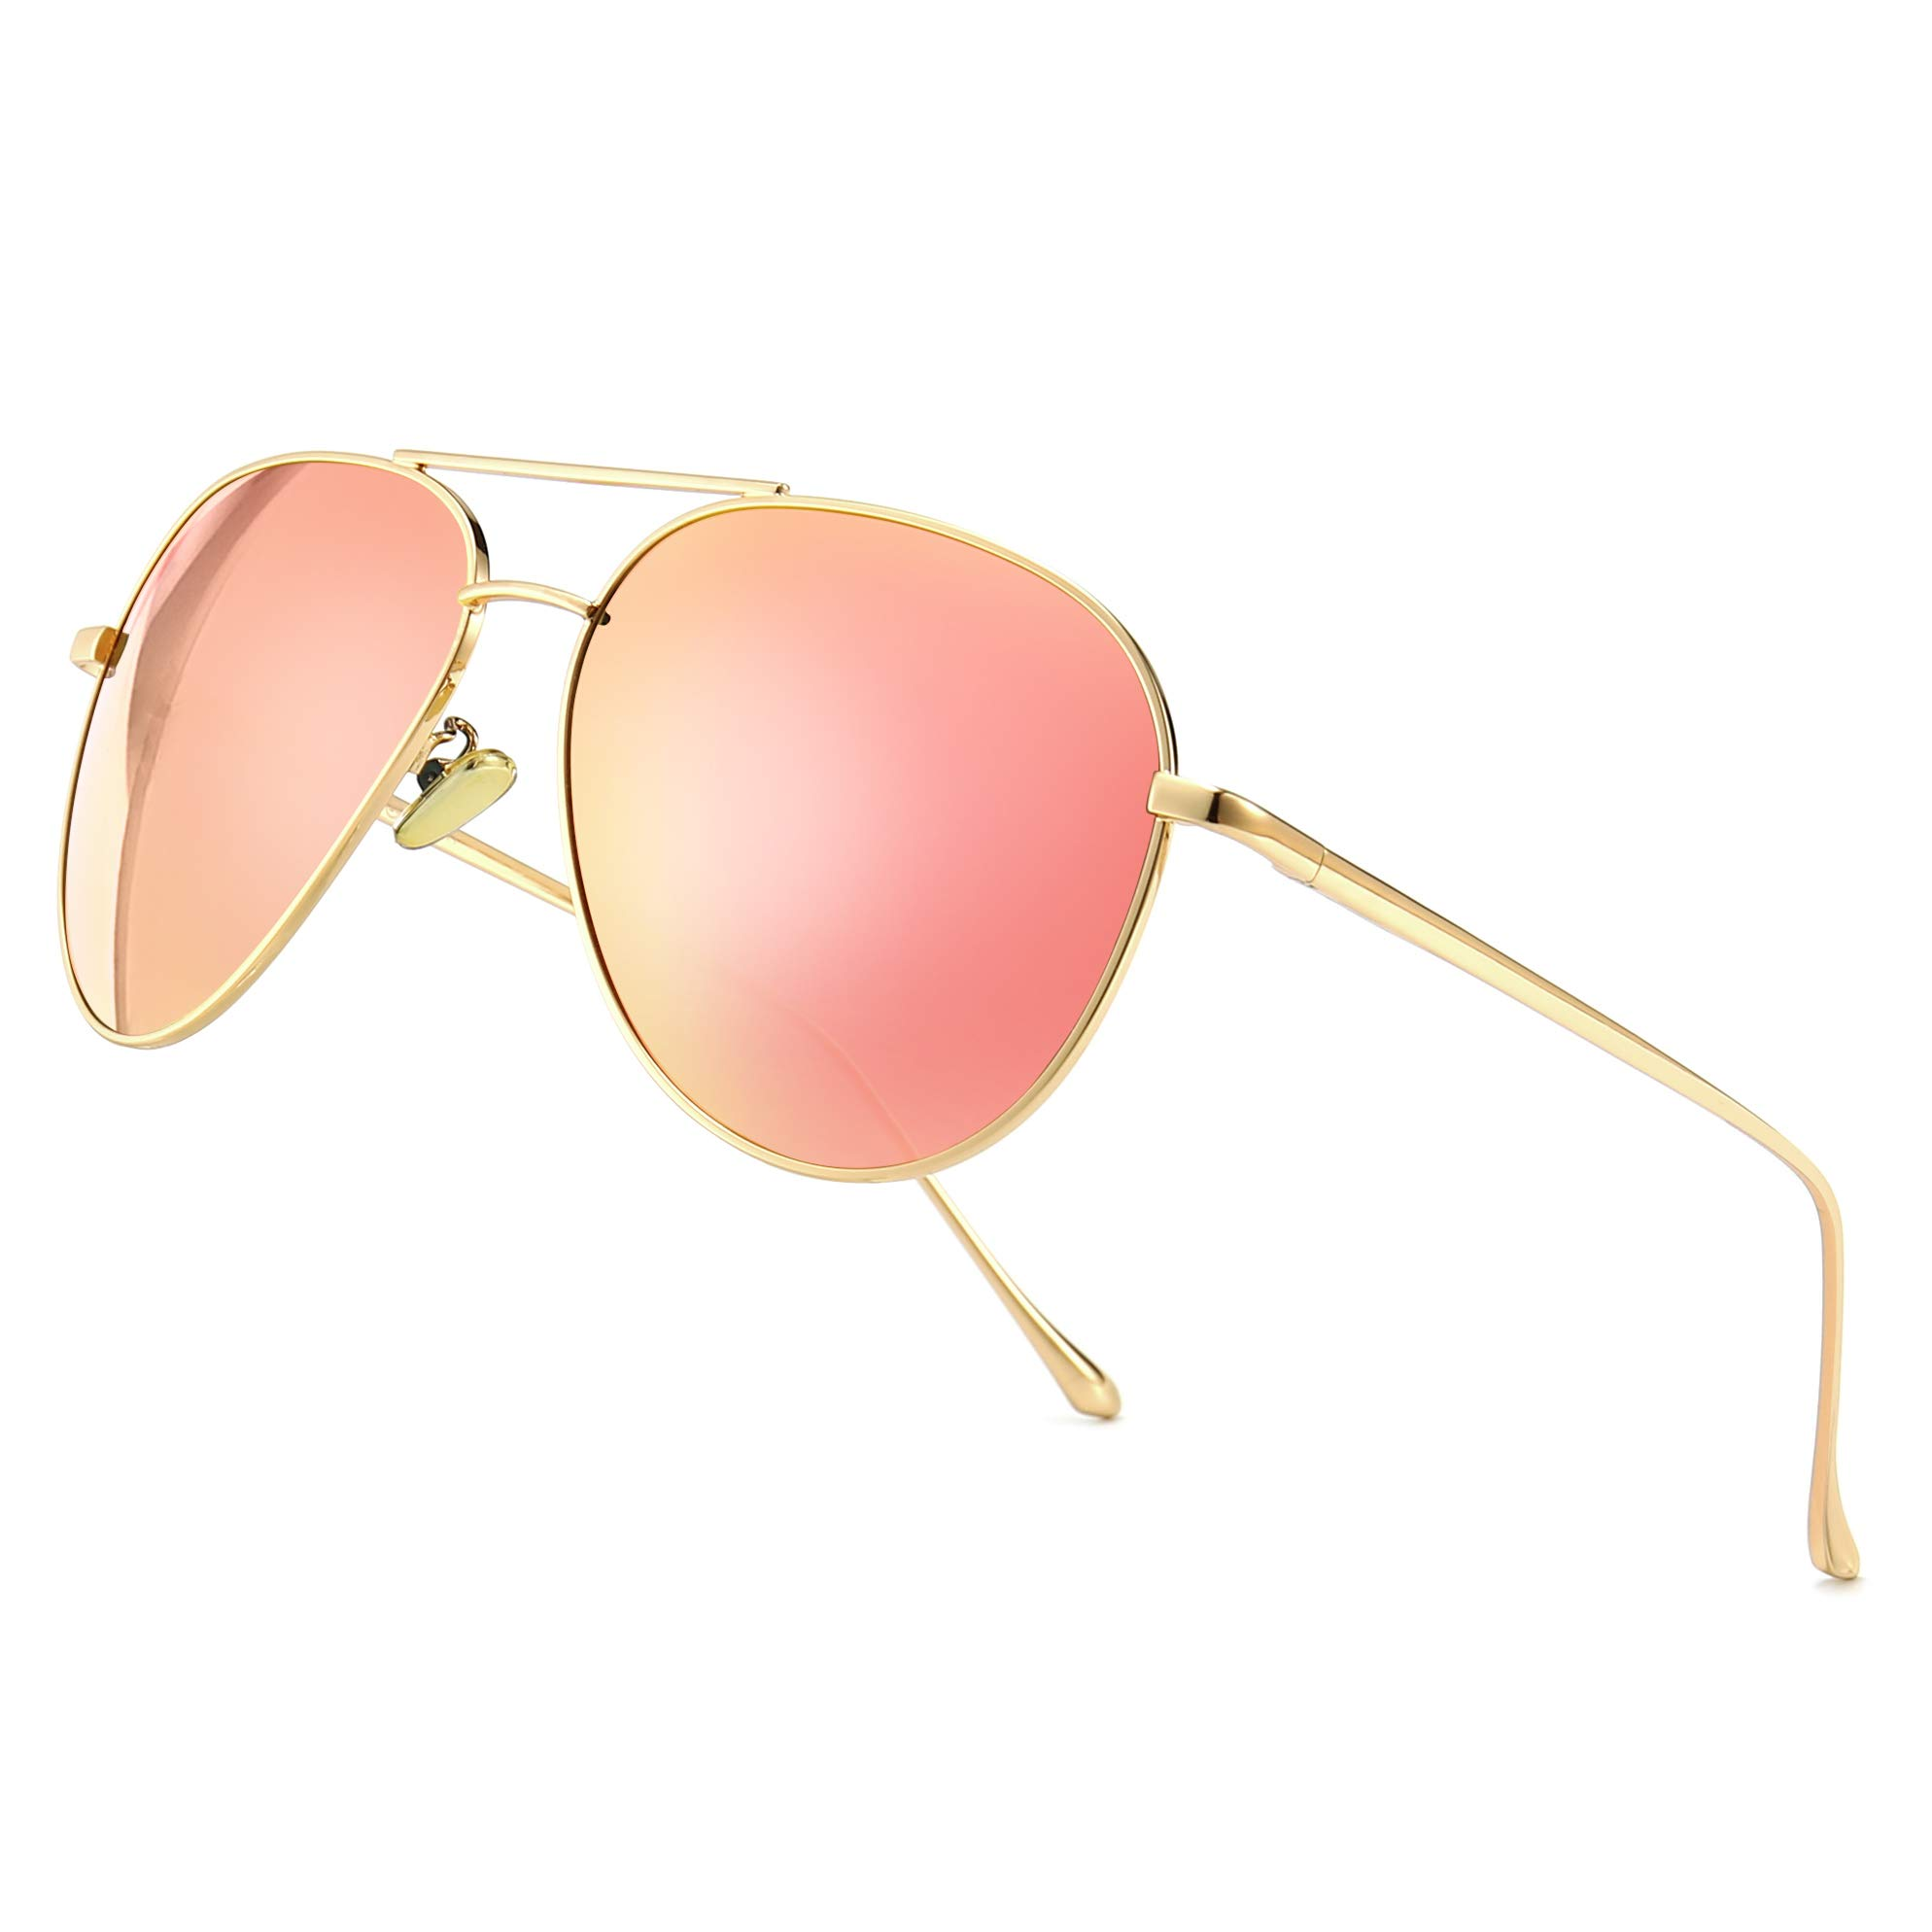 SUNGAIT Women's Lightweight Oversized Aviator Sunglasses - Mirrored Polarized Lens (Light-Gold Frame/Pink Mirror Lens, 60)1603JKF by SUNGAIT